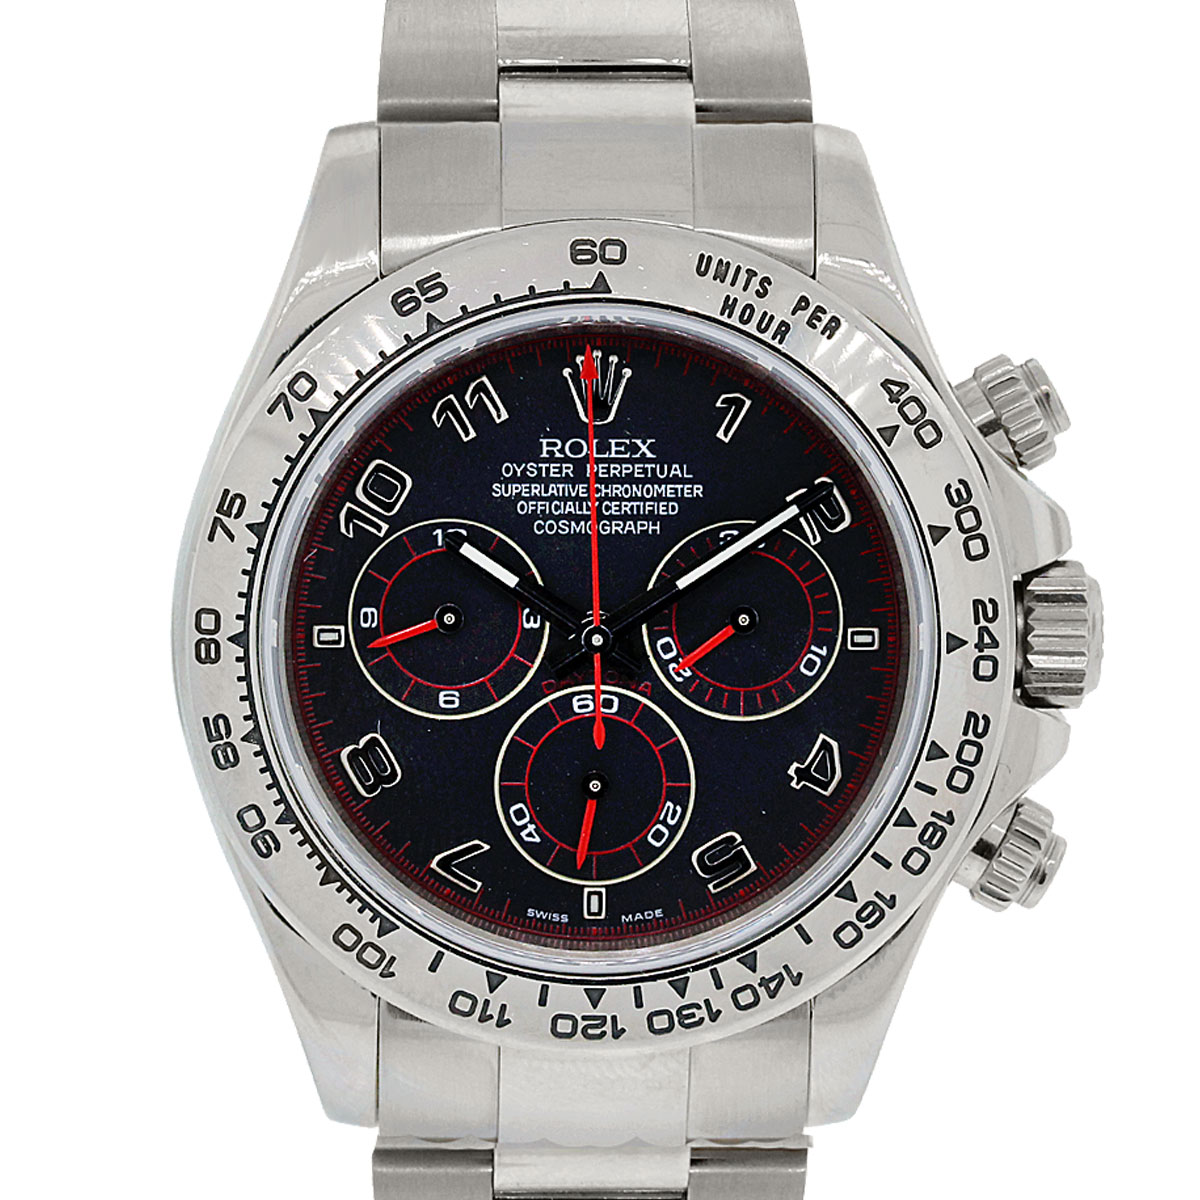 Rolex 116509 Daytona Cosmograph Black And Red Dial